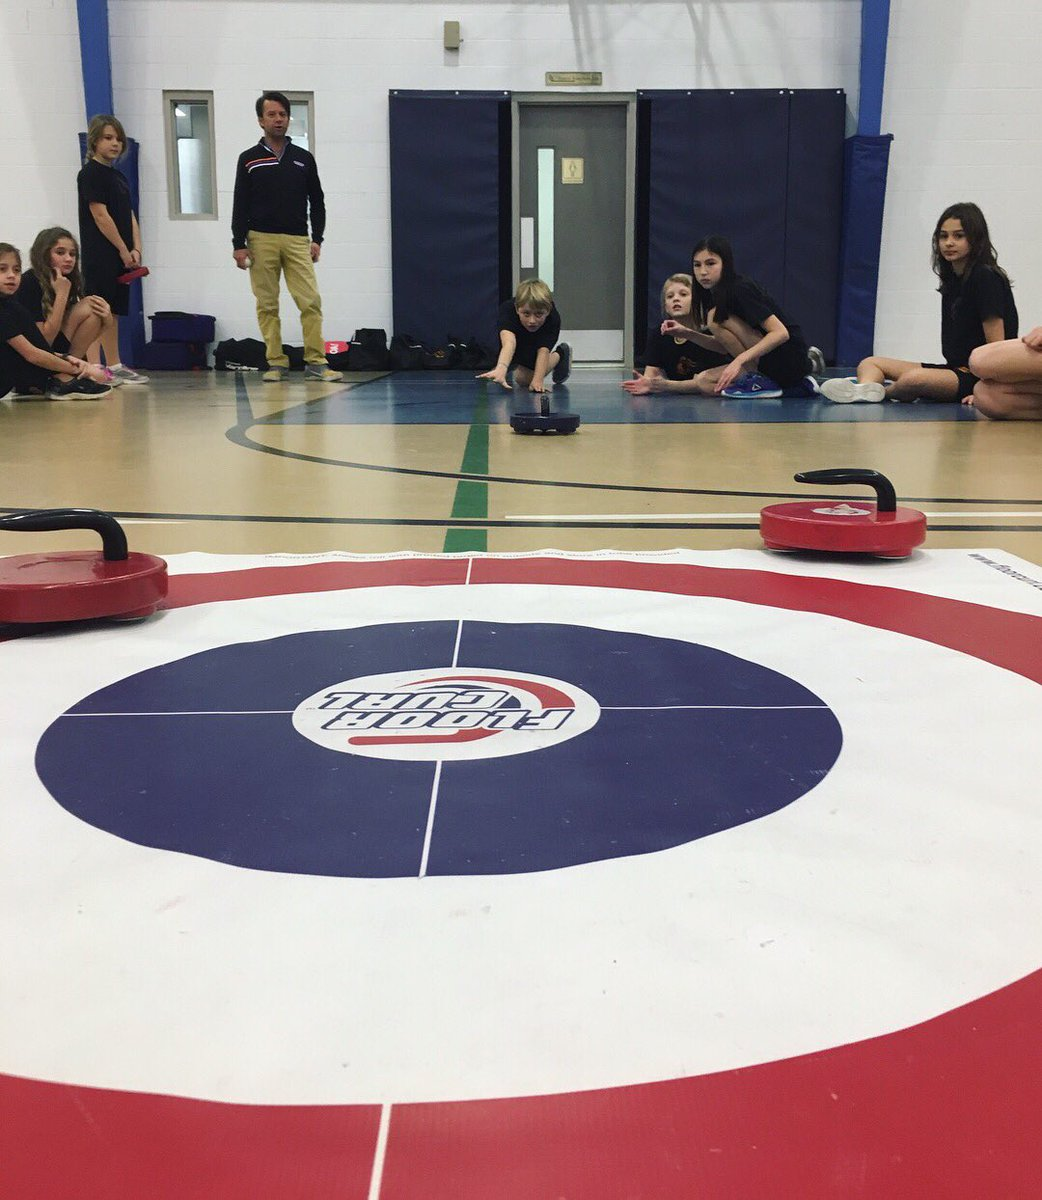 #RocksAndRings is bringing #curling action to #CalgaryAcademy this week. We know #Canada has caught #curlingfever at #ROTR2017 and maybe we'll find the next @TeamKevinKoe • #physed #physicalliteracy #hurryhard <br>http://pic.twitter.com/HVYXjsqLSt – à Calgary Academy